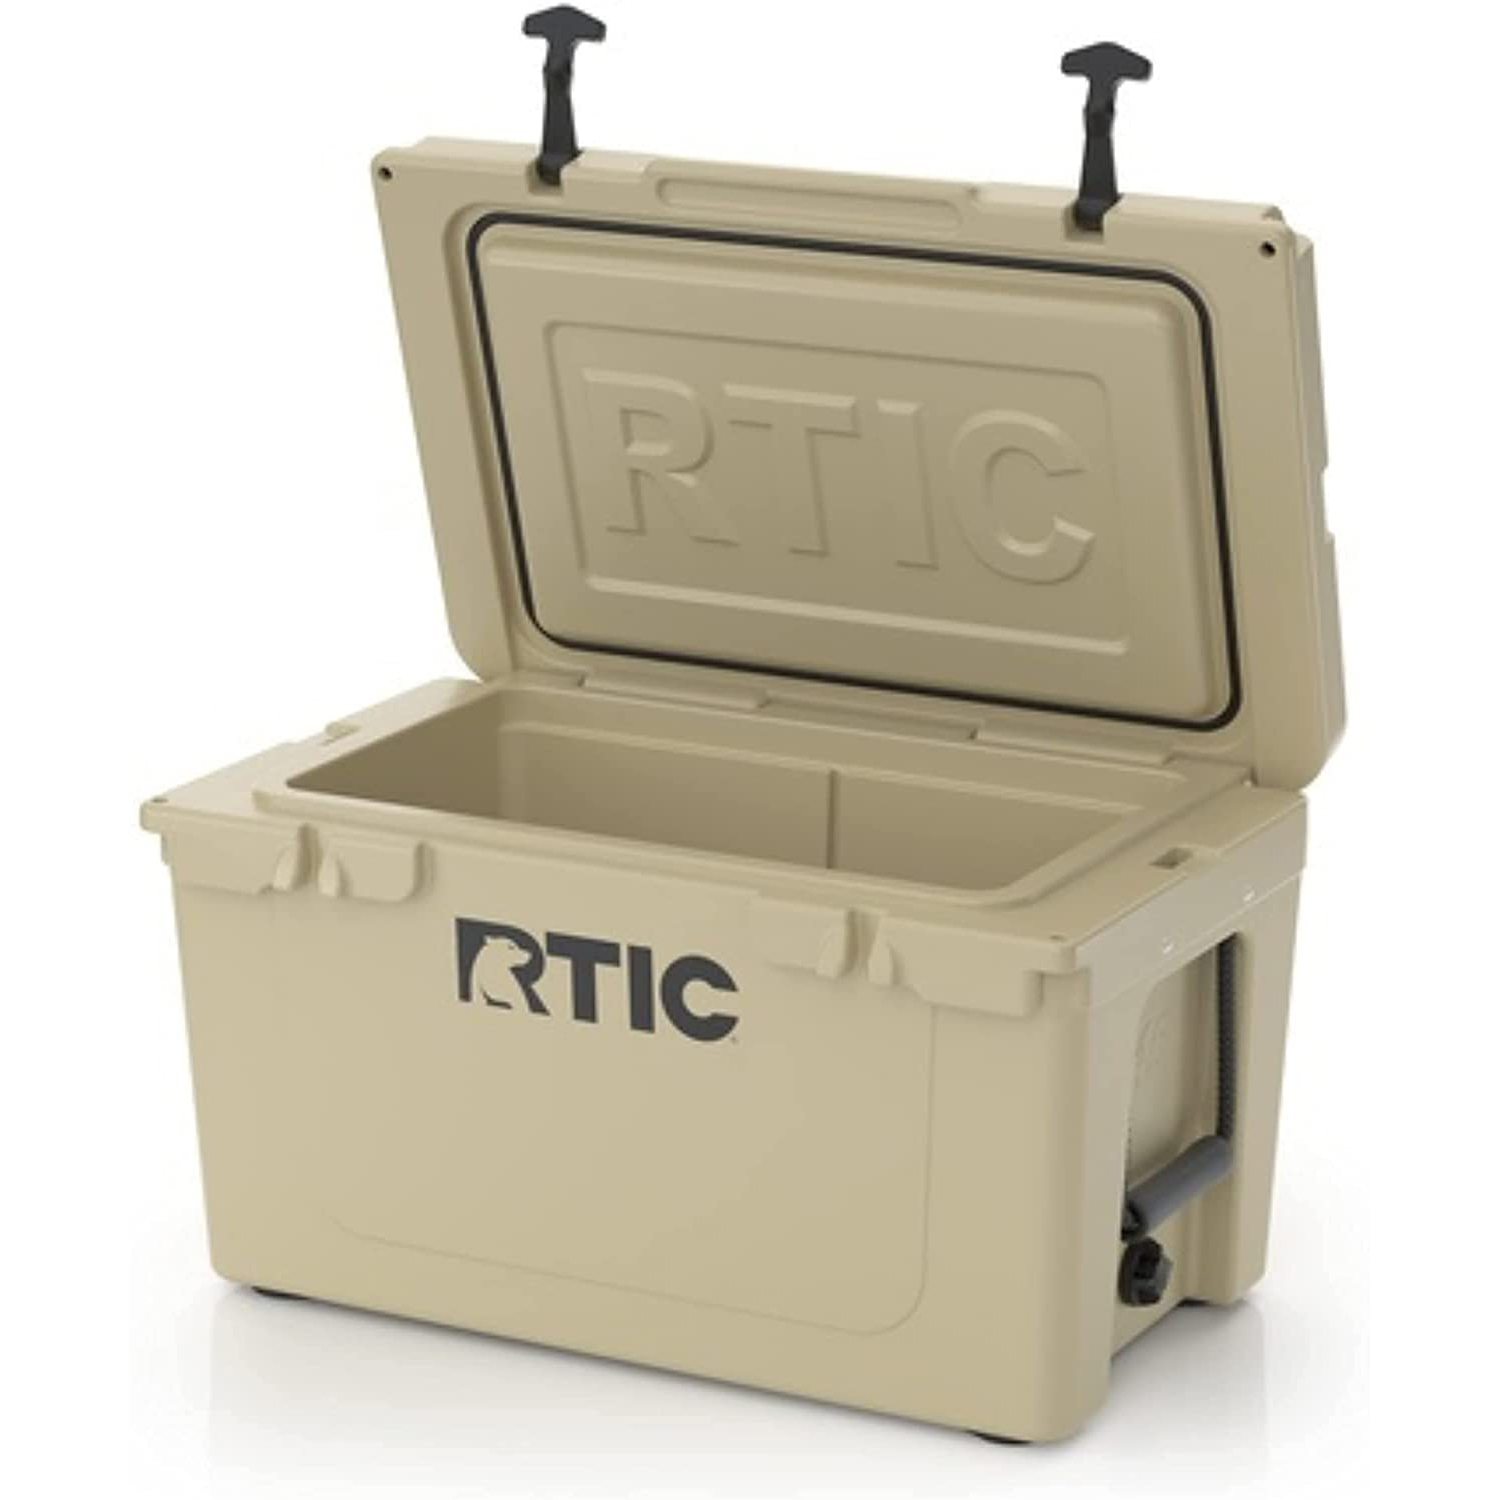 RTIC Hard Cooler, Ice Chest with Heavy Duty Rubber Latches